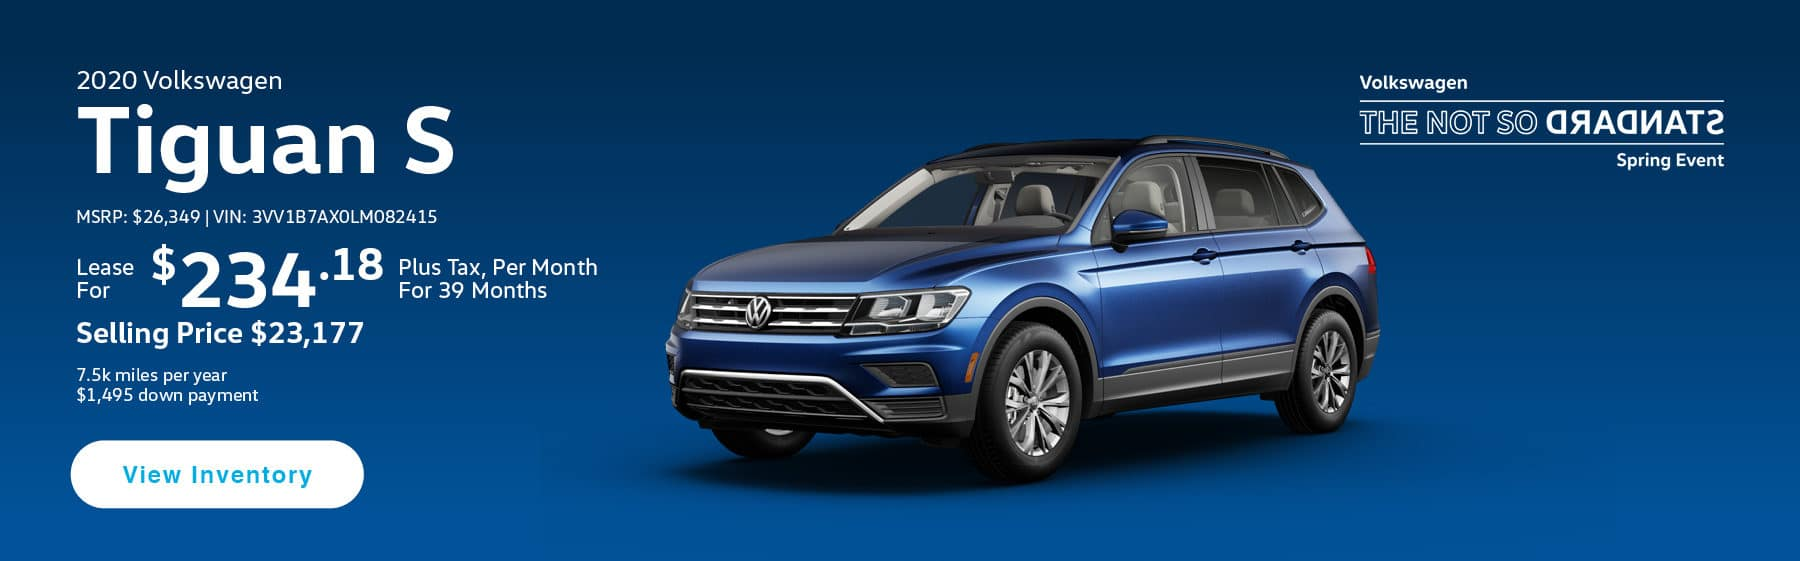 Lease the 2020 Tiguan S for $234.18 per month, plus tax for 39 months.